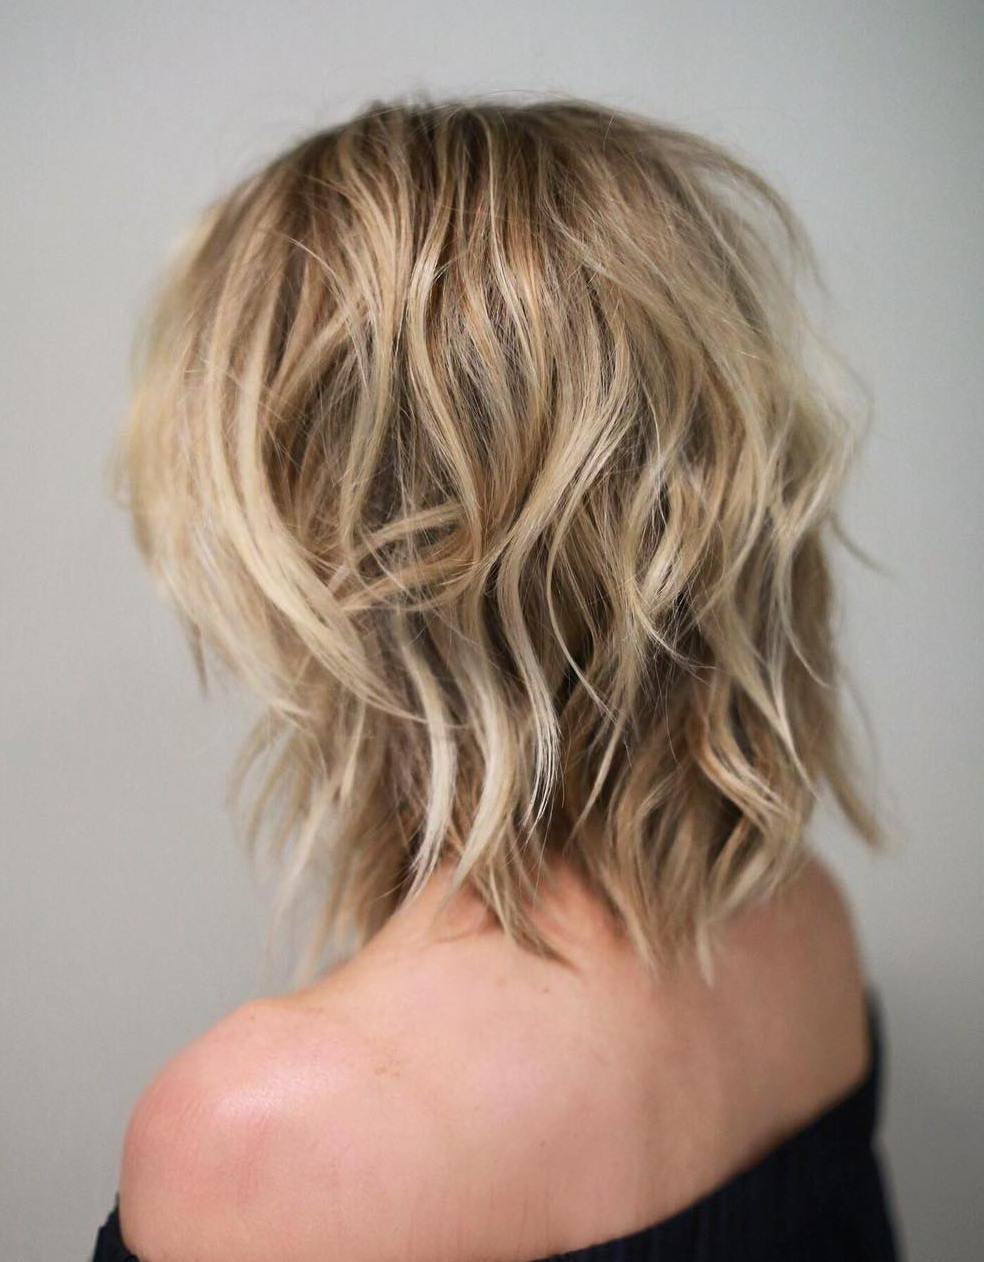 Most Current Sleek Mid Length Haircuts With Shaggy Ends Pertaining To 21 Fabulous Short Shaggy Haircuts For Women – Haircuts (View 14 of 20)